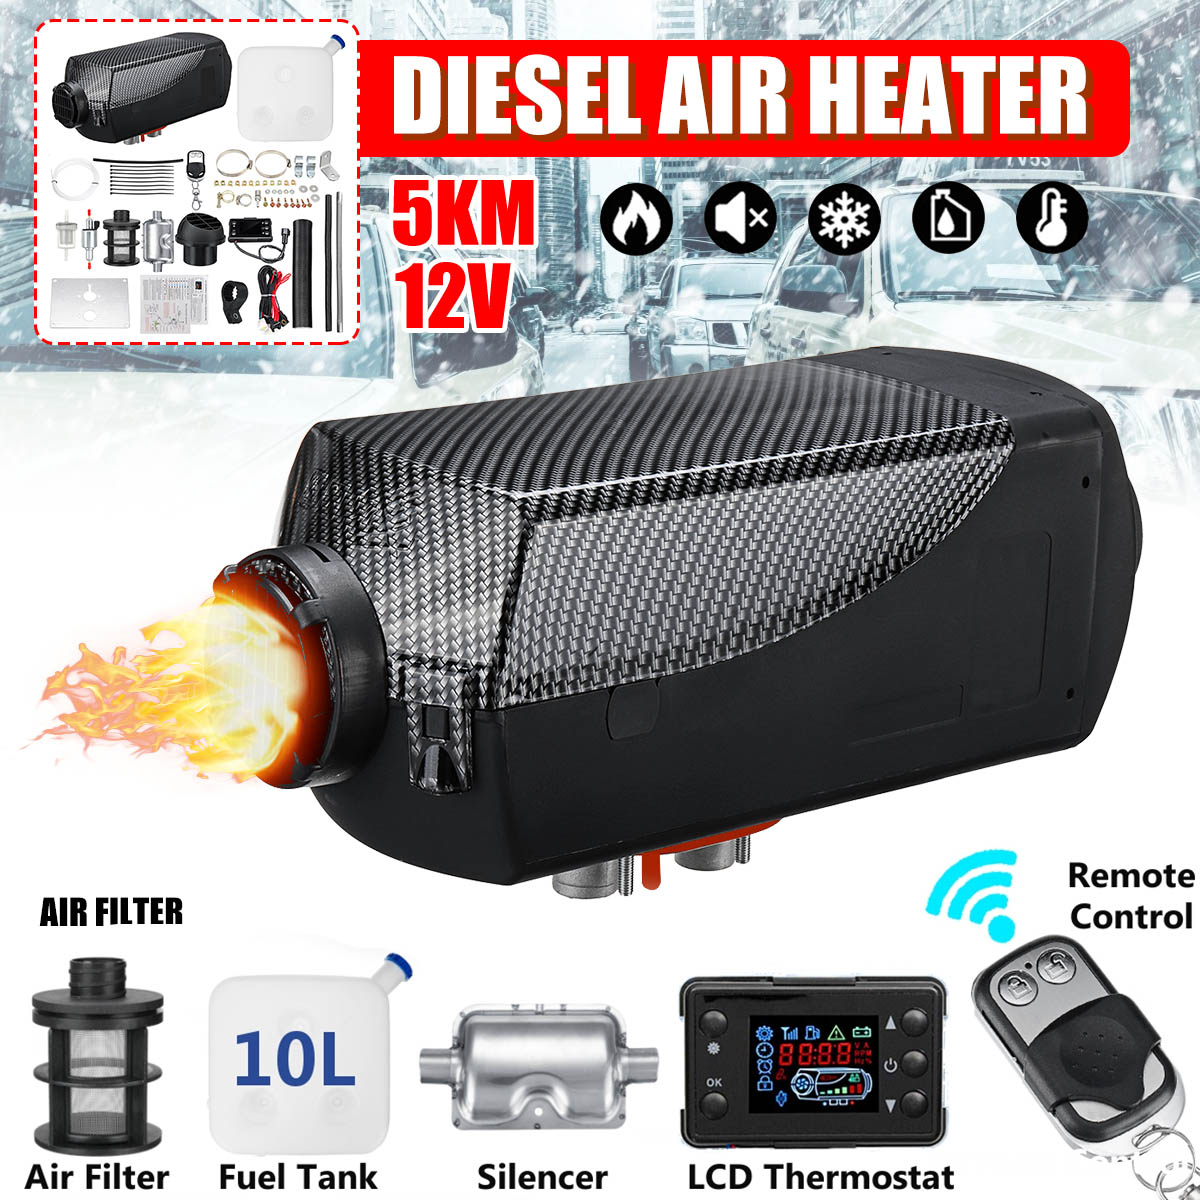 Diesel Air Heater 5KW 12V Planar LCD For Car Trucks Boats Motor-Homes Latest Kit Monitor for RV Motorhome Trailer With RemoteDiesel Air Heater 5KW 12V Planar LCD For Car Trucks Boats Motor-Homes Latest Kit Monitor for RV Motorhome Trailer With Remote